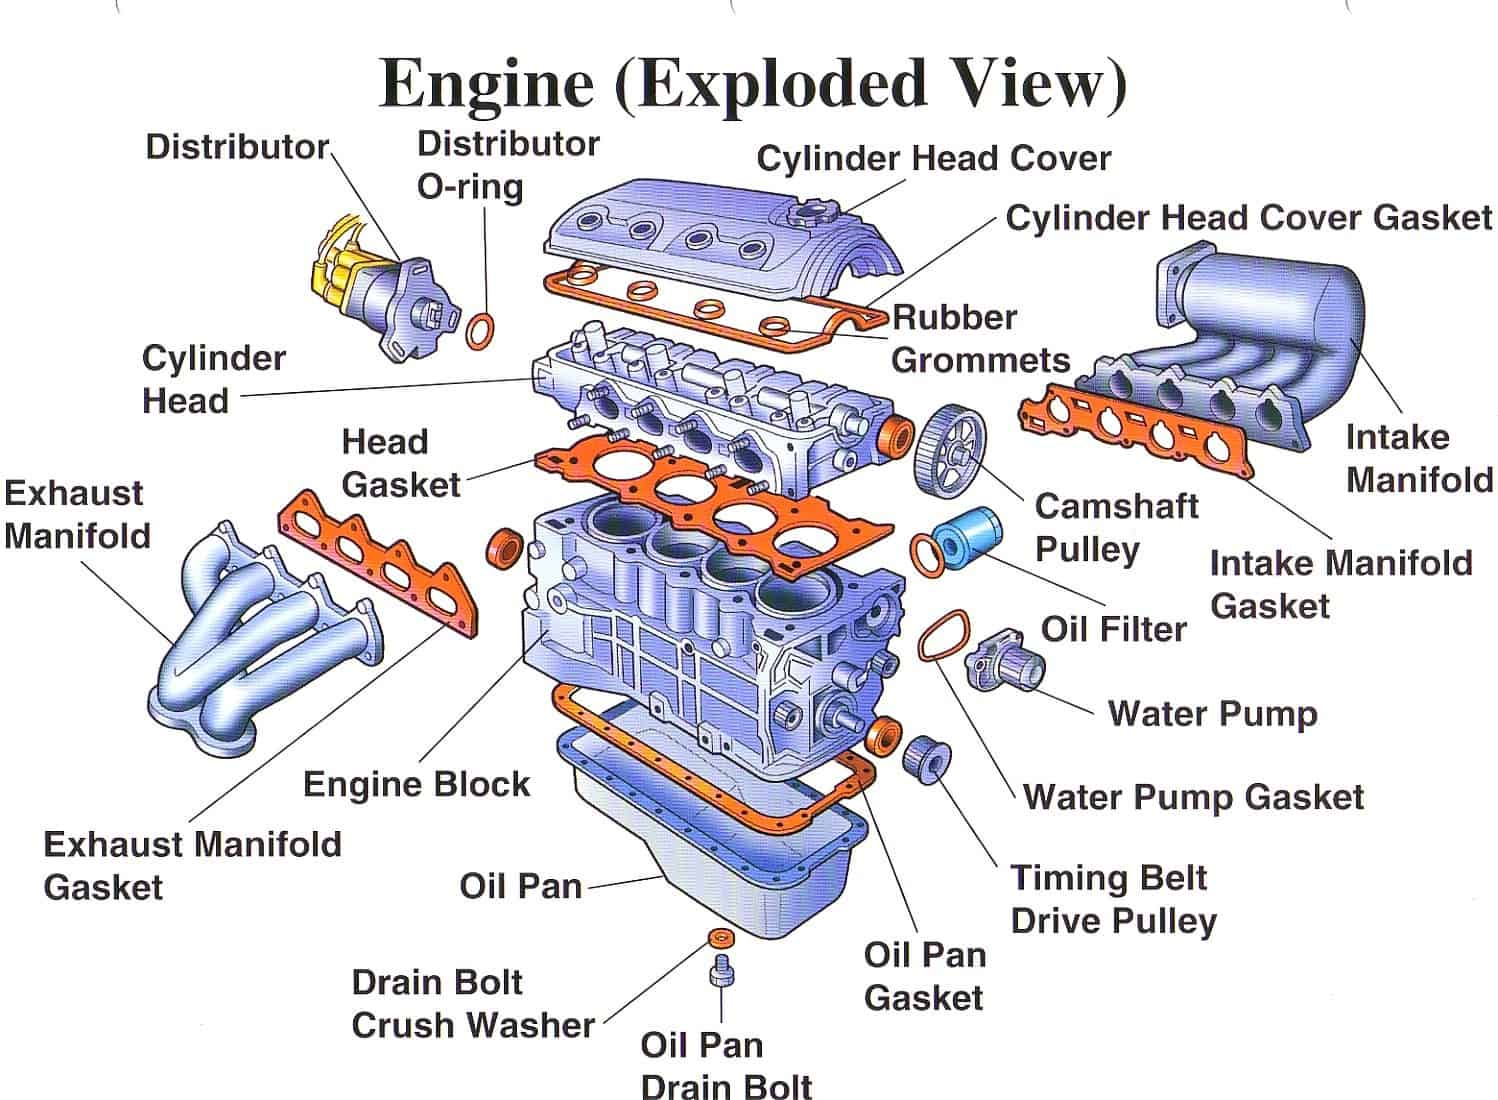 Car Engine Diagrams - Wiring Diagram Dash on 2003 sequoia fuse diagram, 82 chevy vacuum line diagram, tr 8 wiring diagram, chevy 305 vacuum hose diagram,